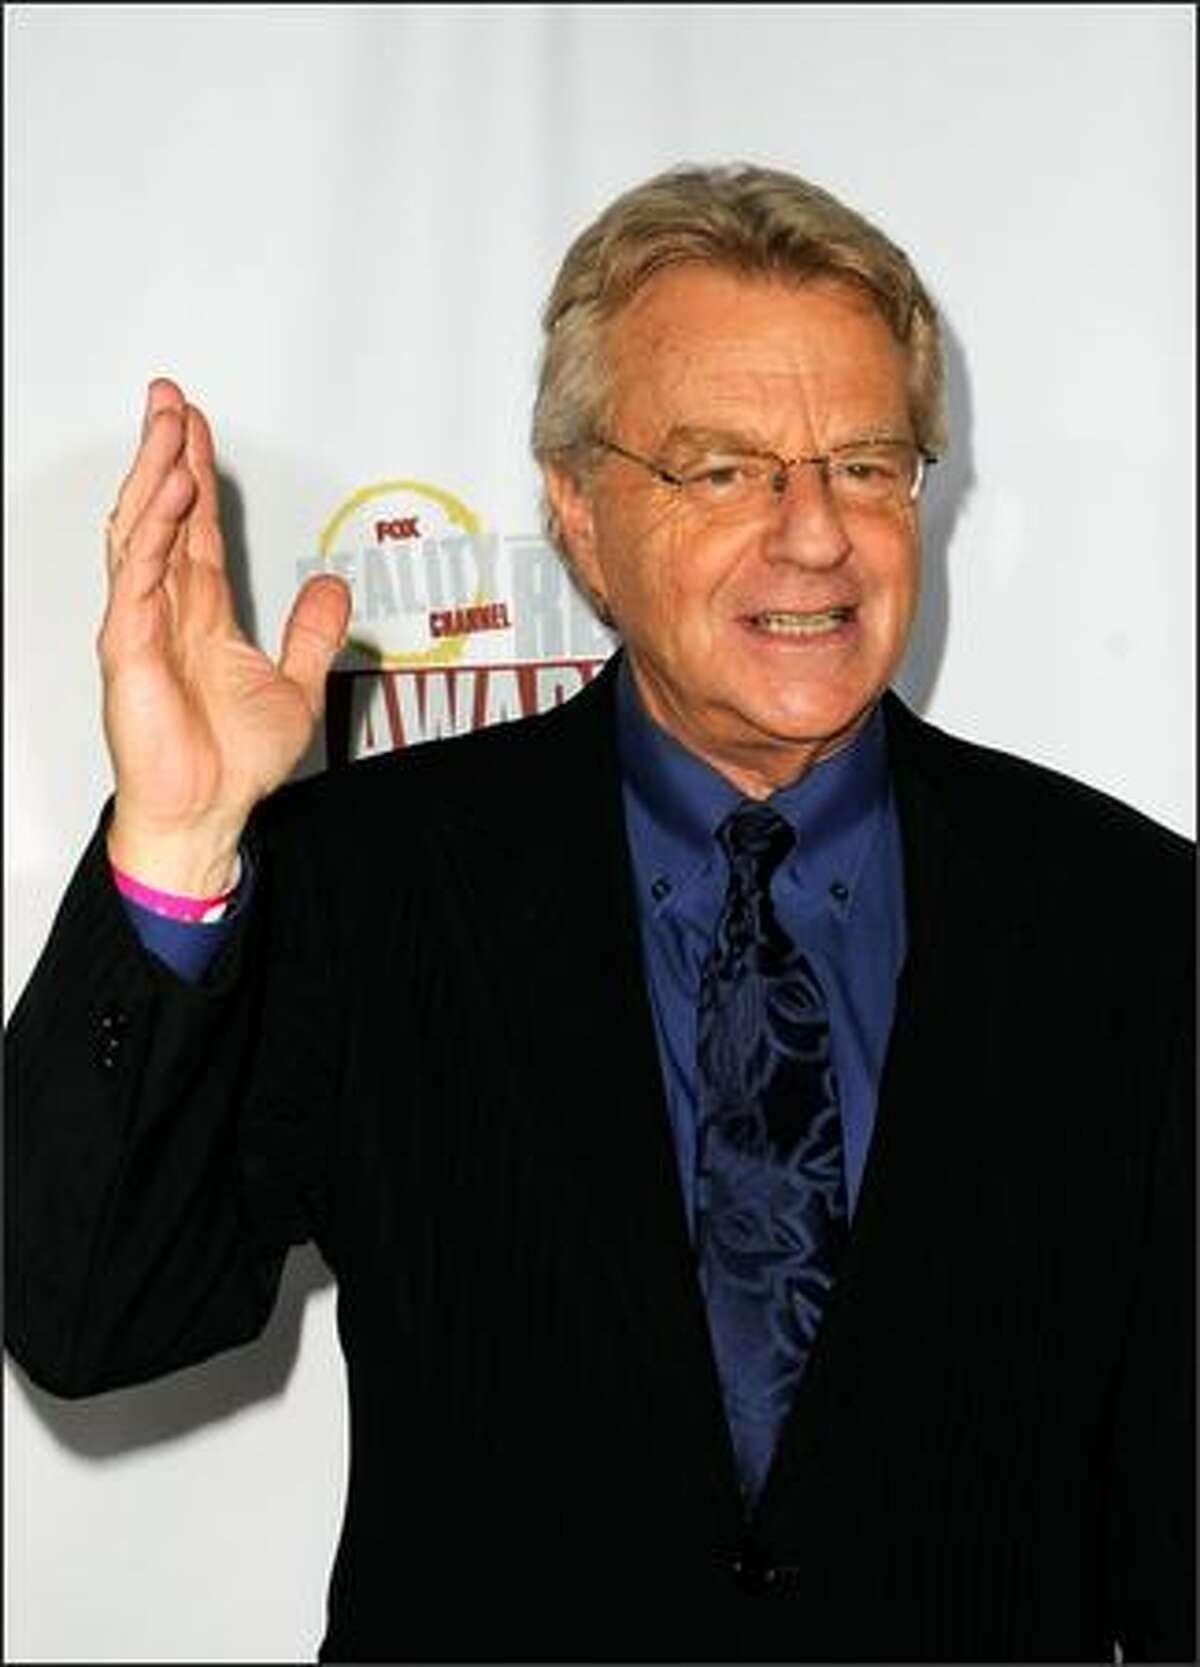 Television host Jerry Springer arrives.